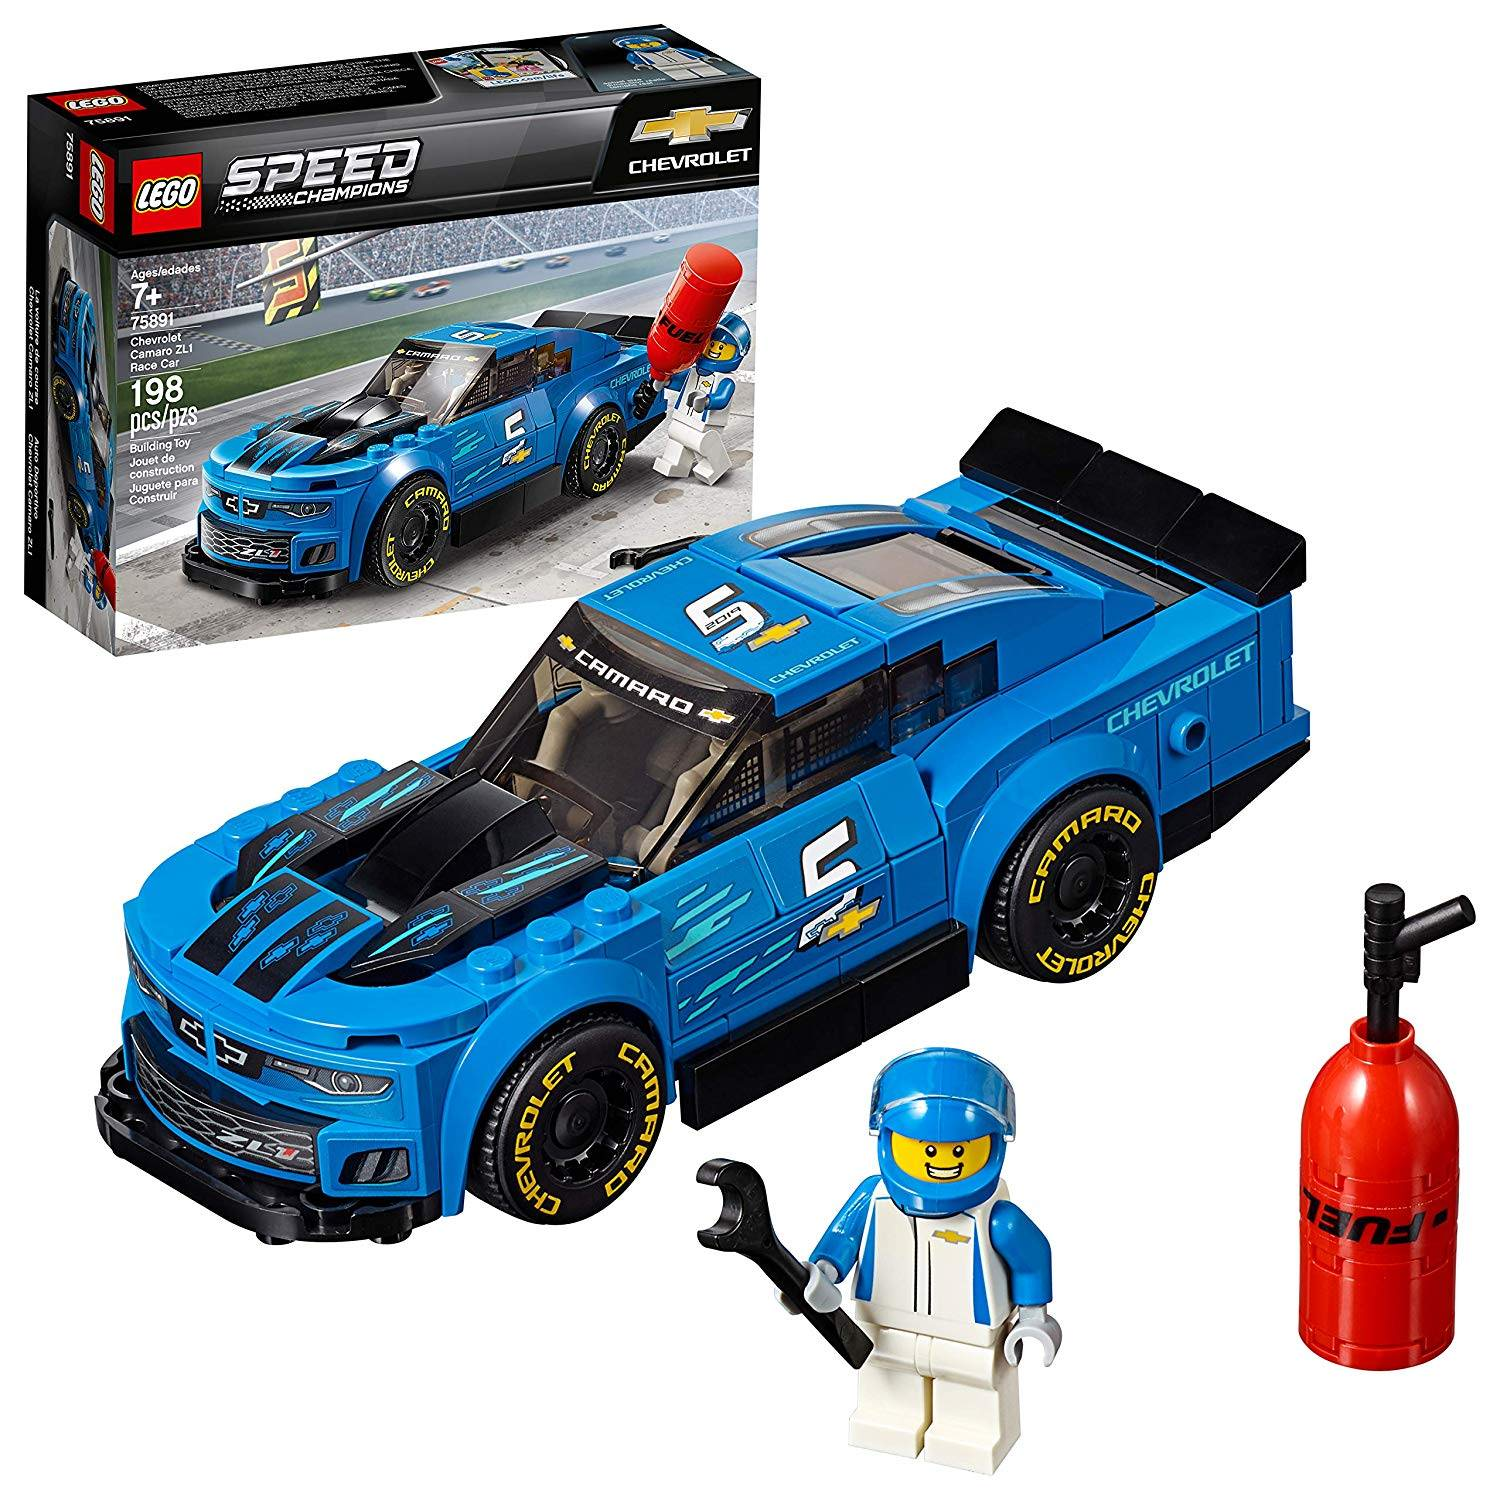 LEGO 75891: Chevrolet Camaro ZL1 Race Car